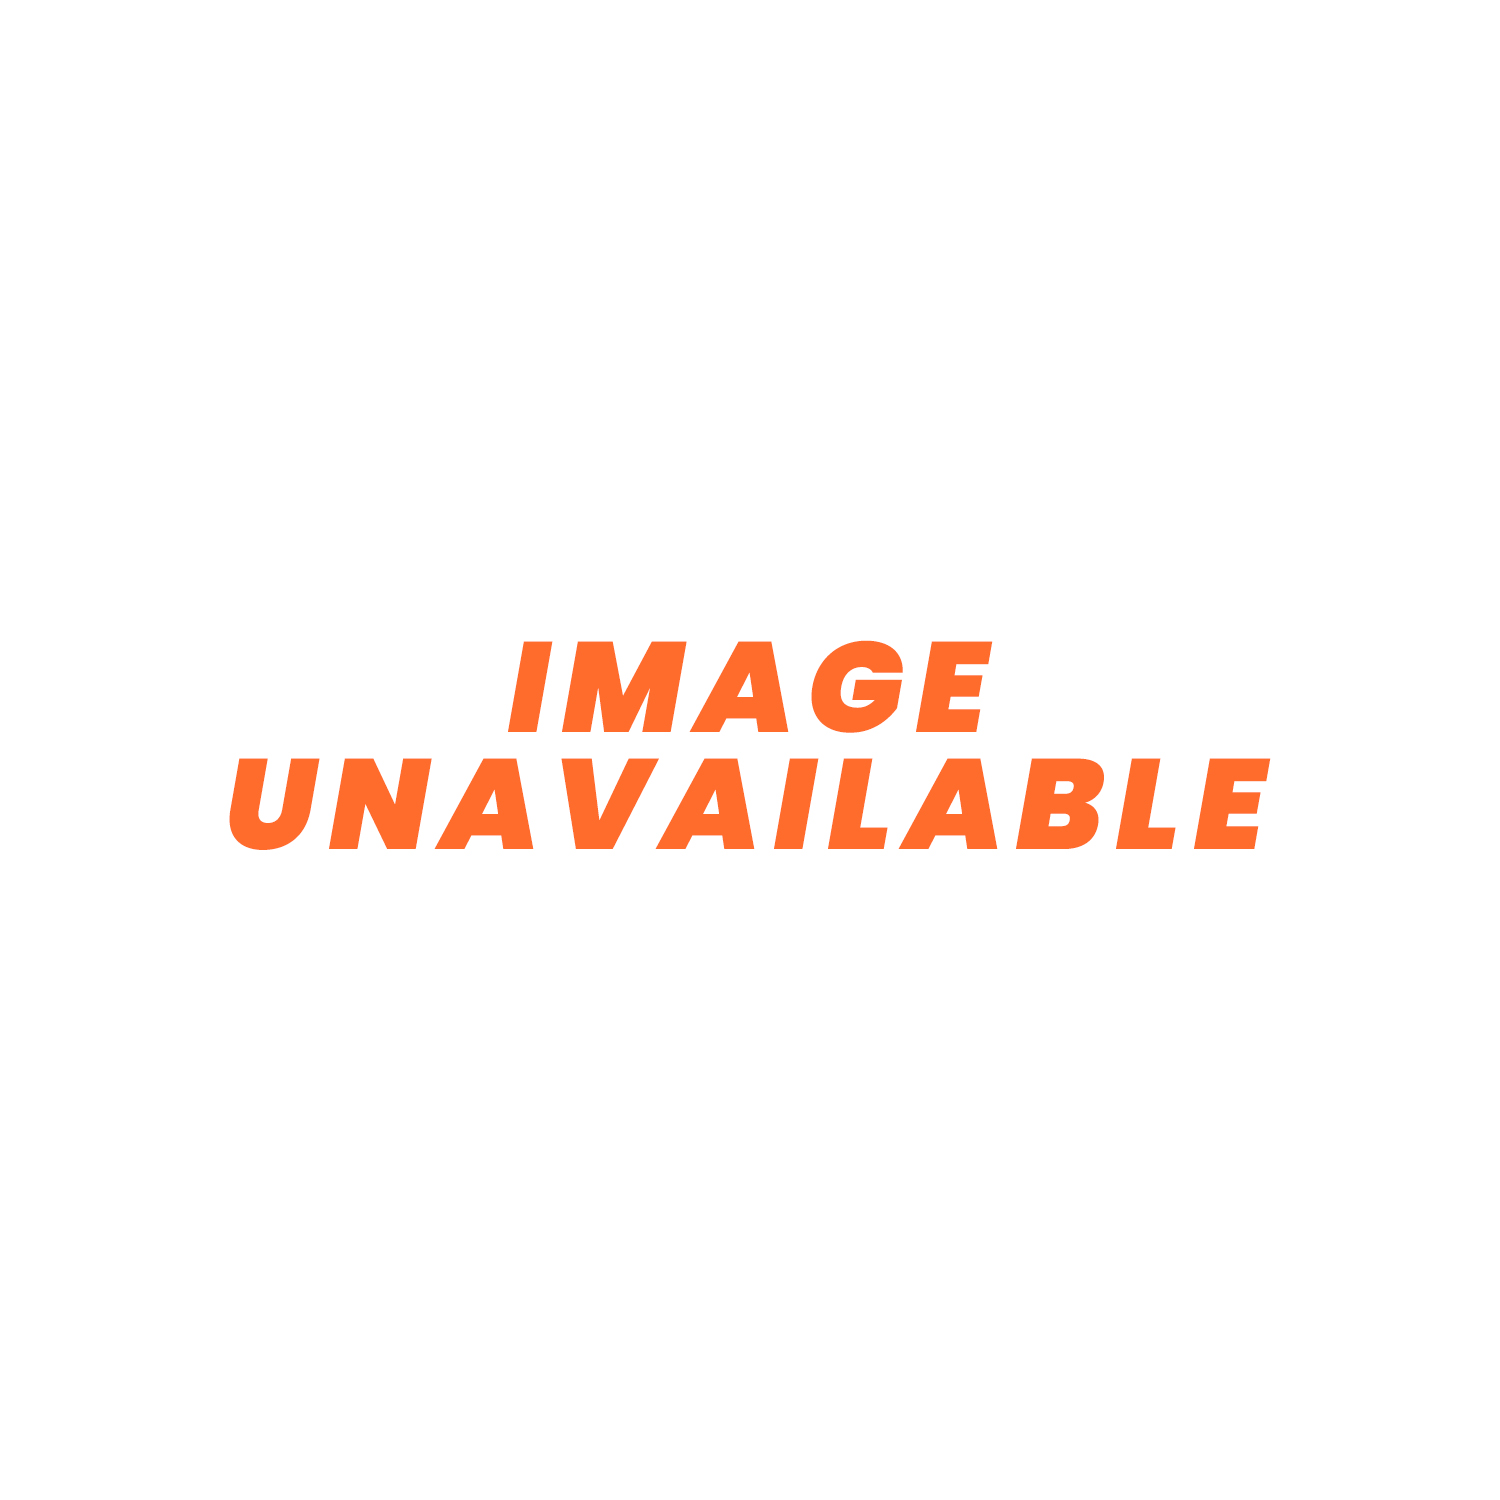 Jubilee 'O' Clip 304 Stainless Steel 9 - 11mm Dia Hose Clamp